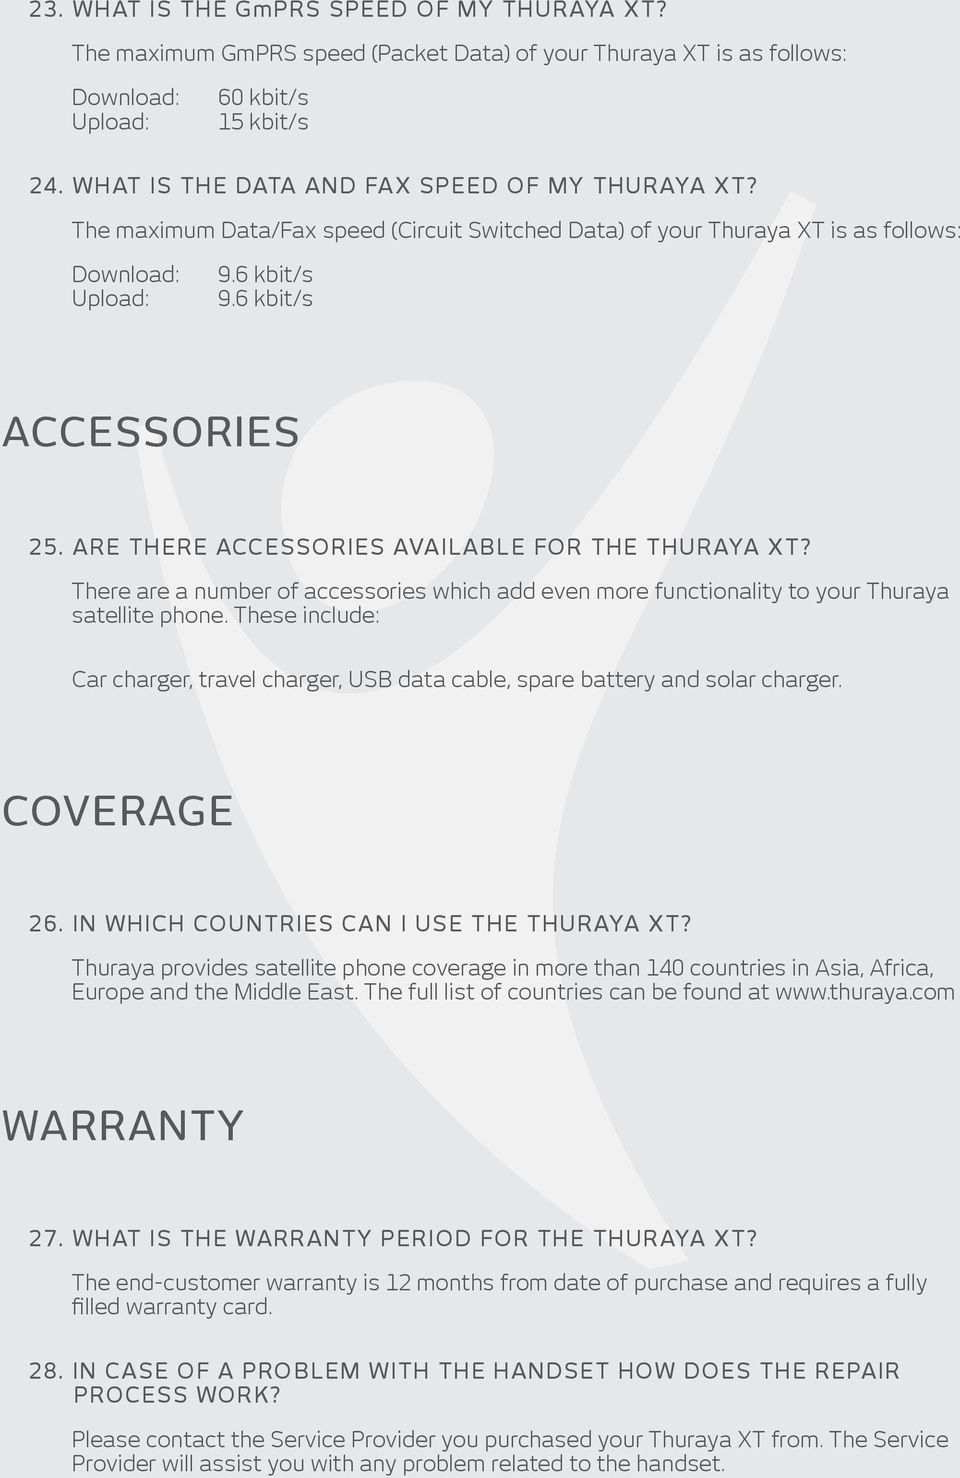 Are there accessories available for the Thuraya XT? There are a number of accessories which add even more functionality to your Thuraya satellite phone.